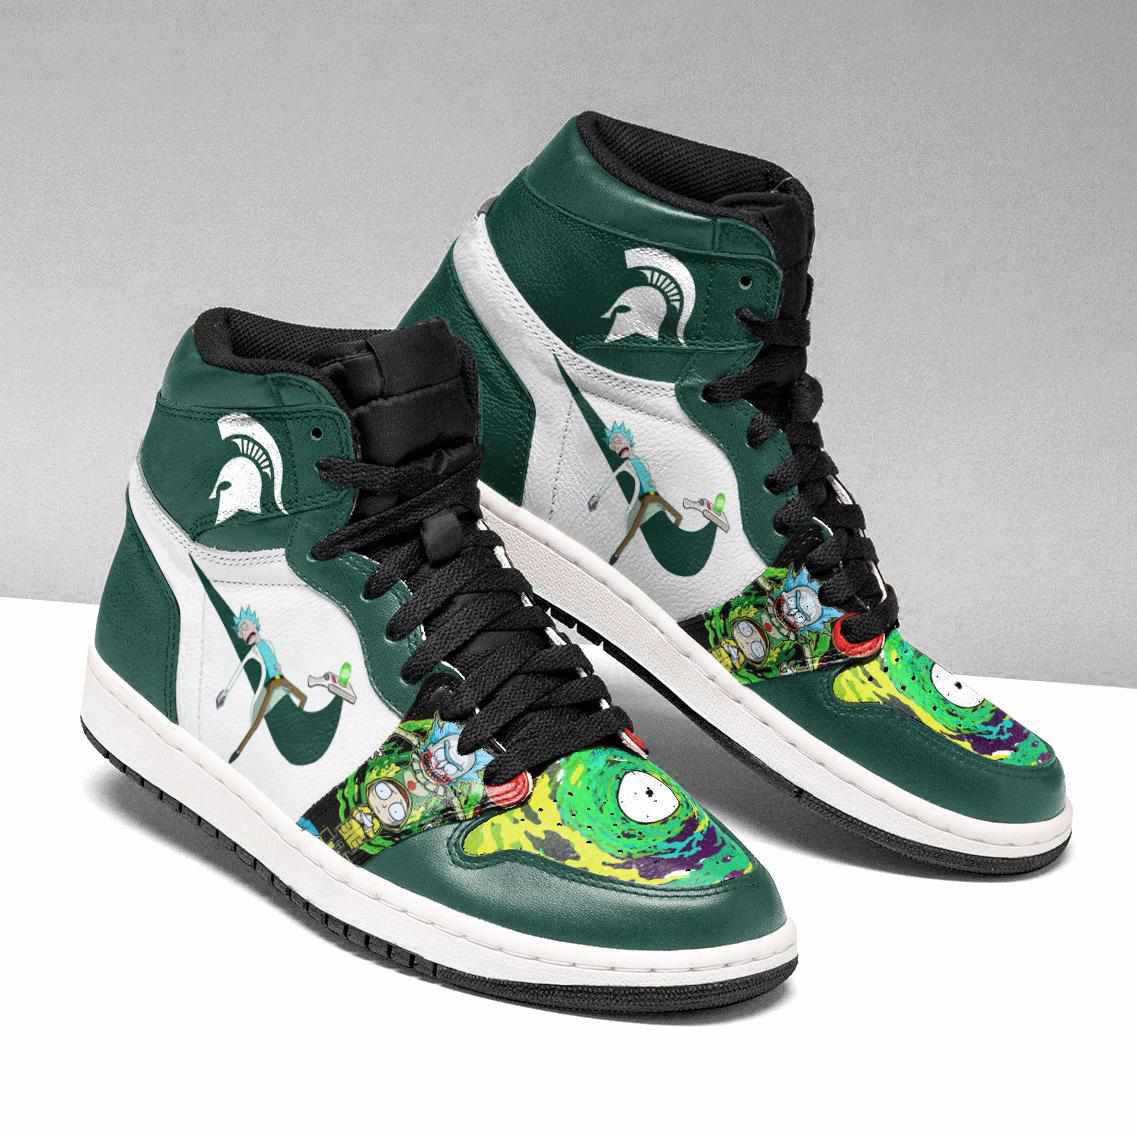 Rick And Morty Michigan Custom Air Jordan Shoes